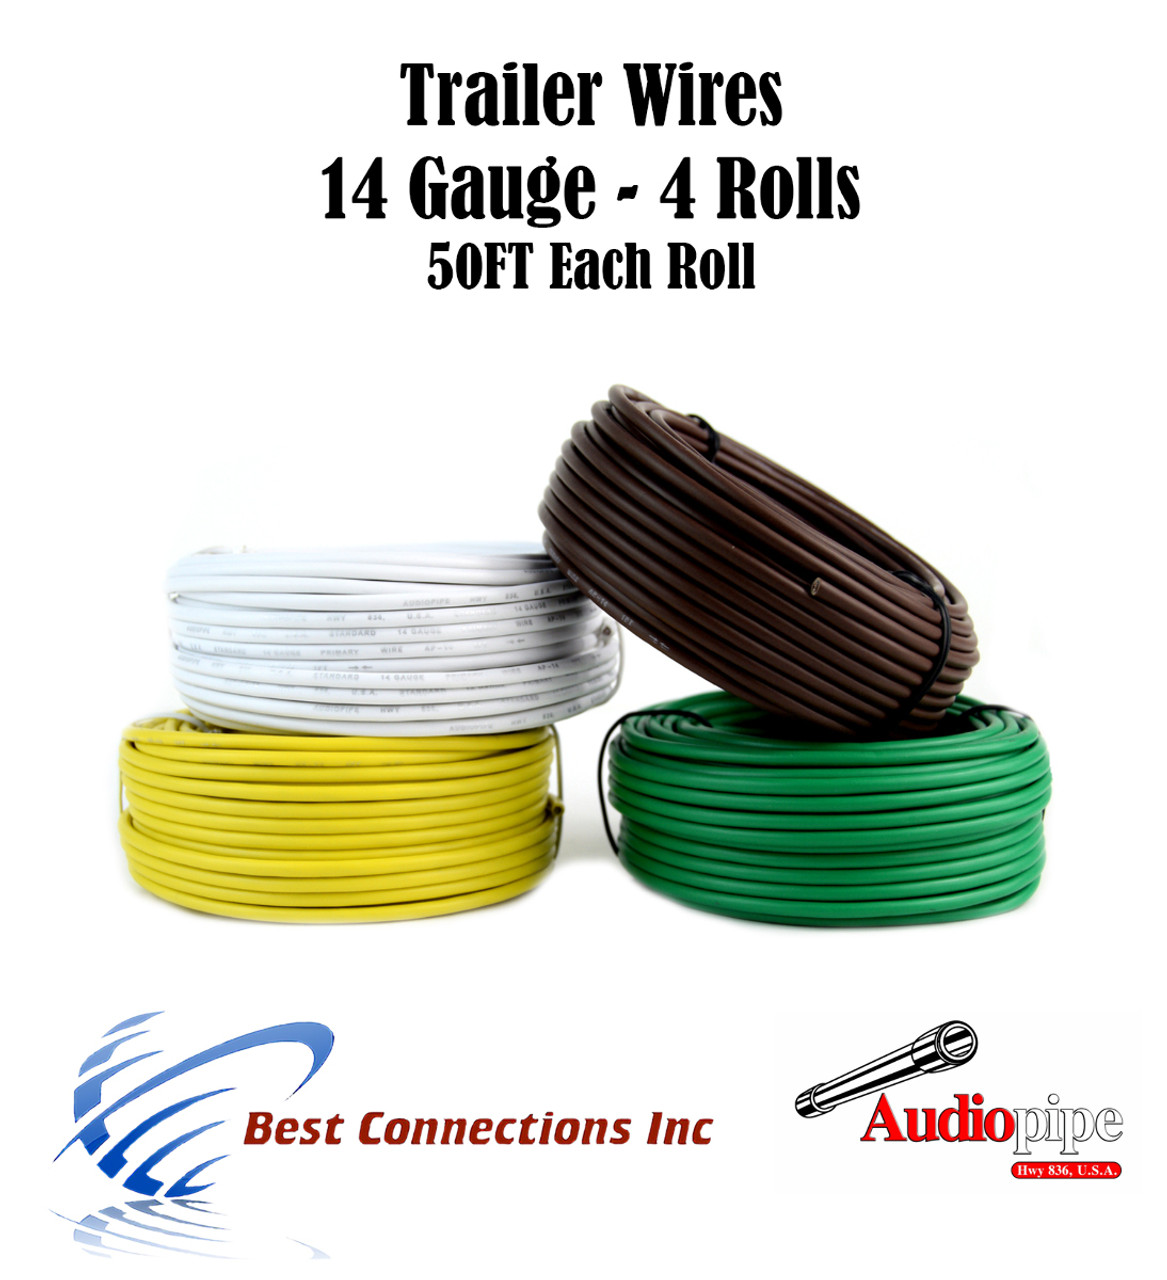 Trailer Light Cable Wiring Harness Trusted Diagram Utility Wire For 50 Feet 14 Gauge 4 16